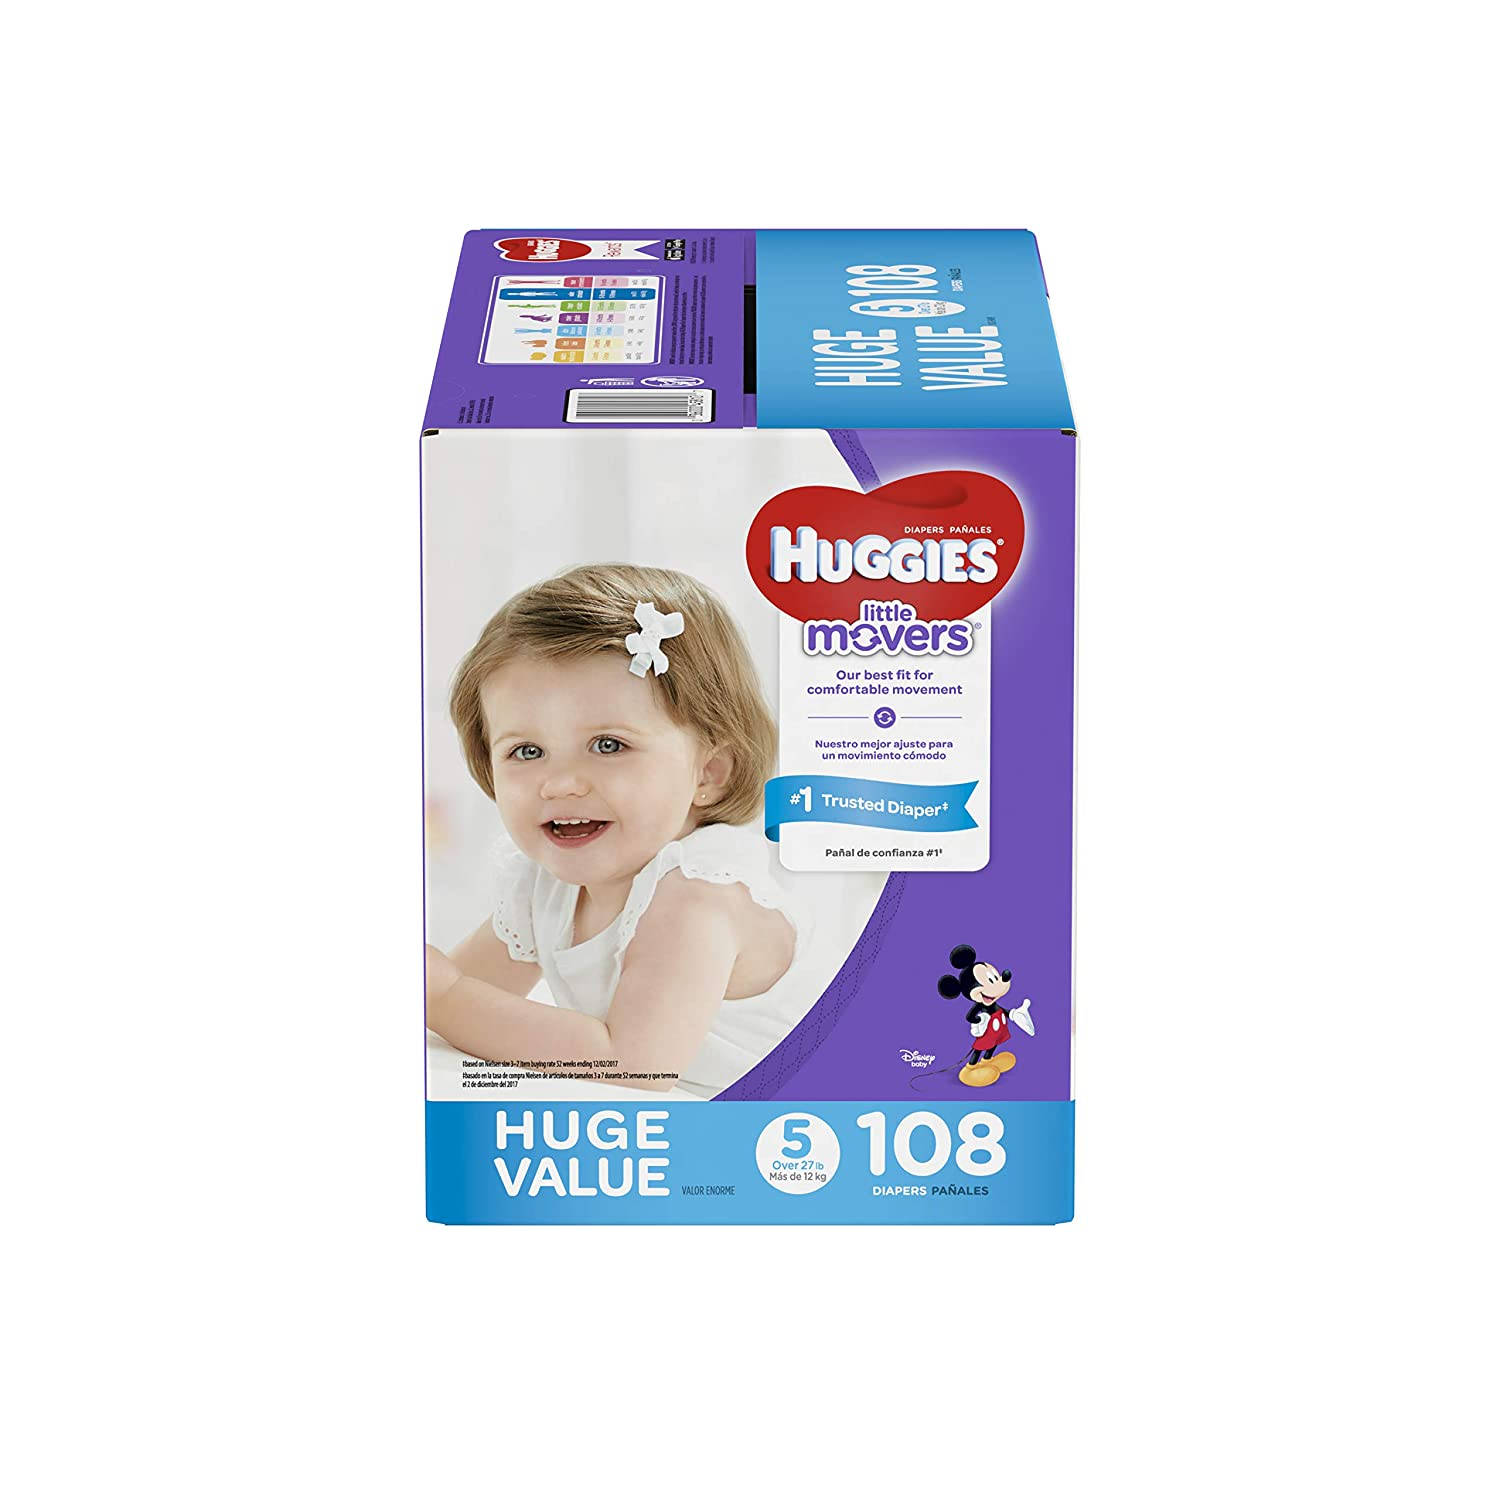 Amazon.com: HUGGIES Little Movers Diapers, Size 5 (27+ lb.), 108 Ct, Huge Pack (Packaging May Vary), Baby Diapers for Active Babies: Health & Personal Care